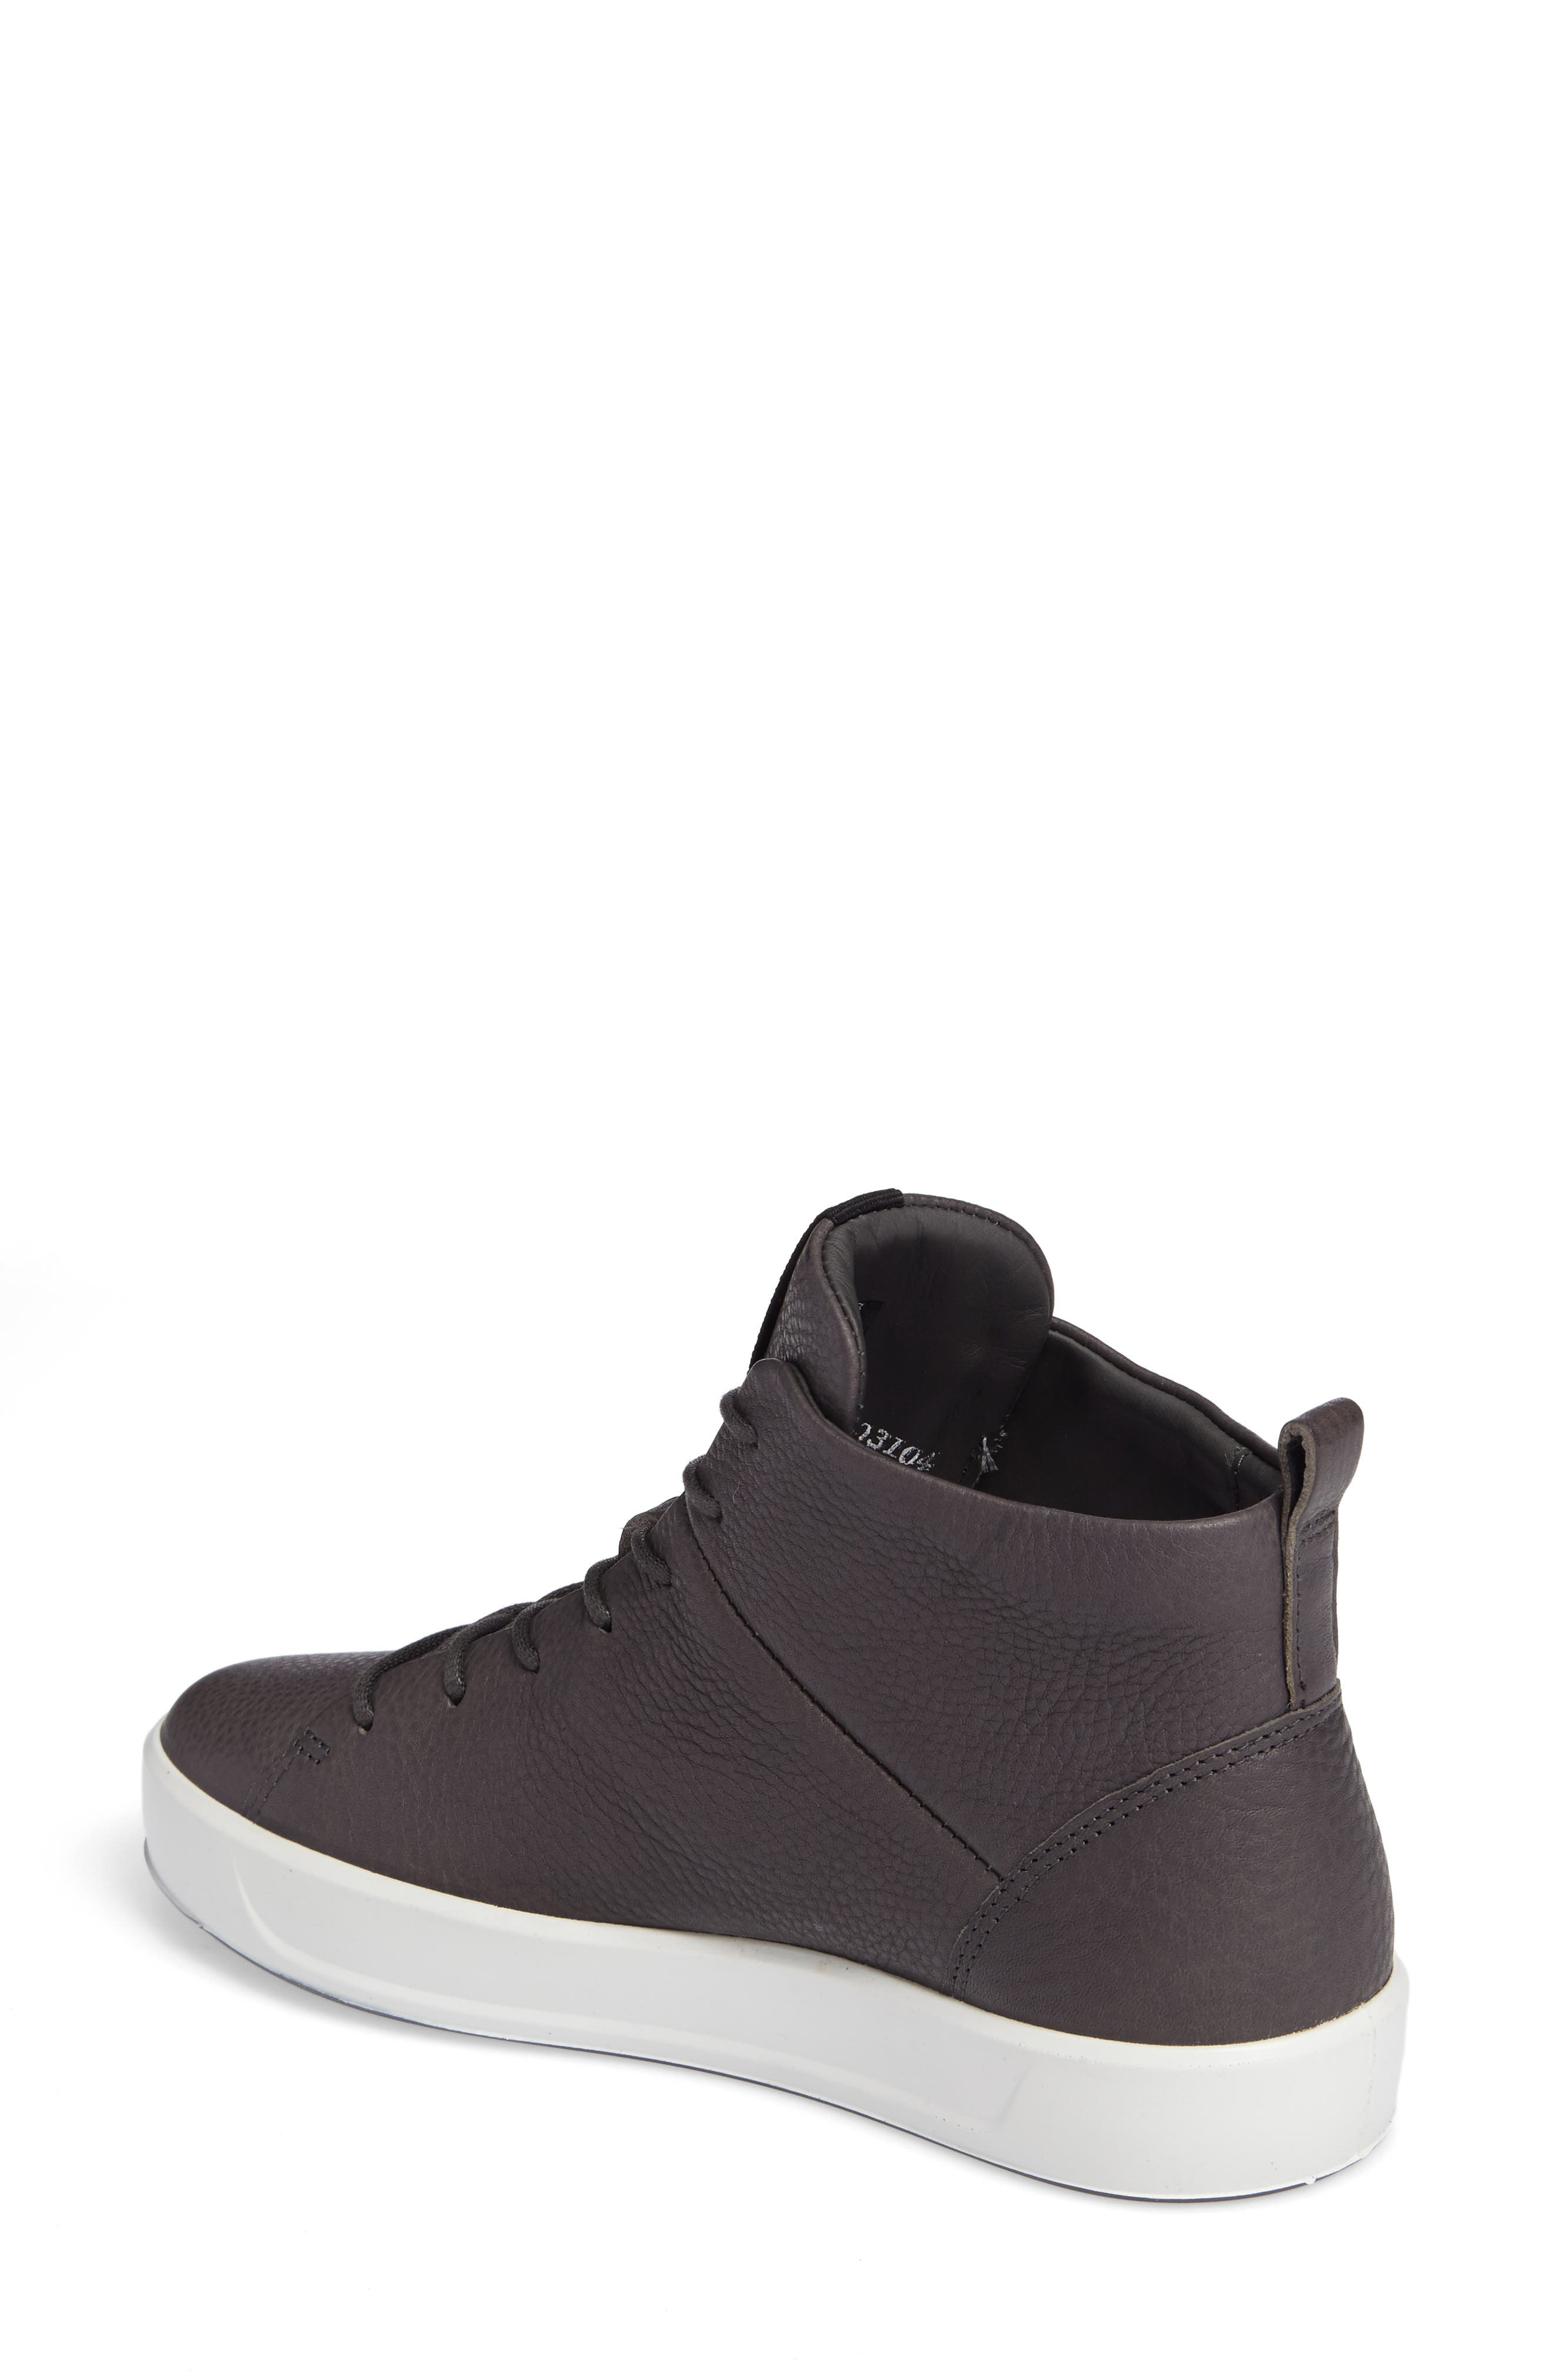 Soft 8 High Top Sneaker,                             Alternate thumbnail 2, color,                             DARK SHADOW LEATHER